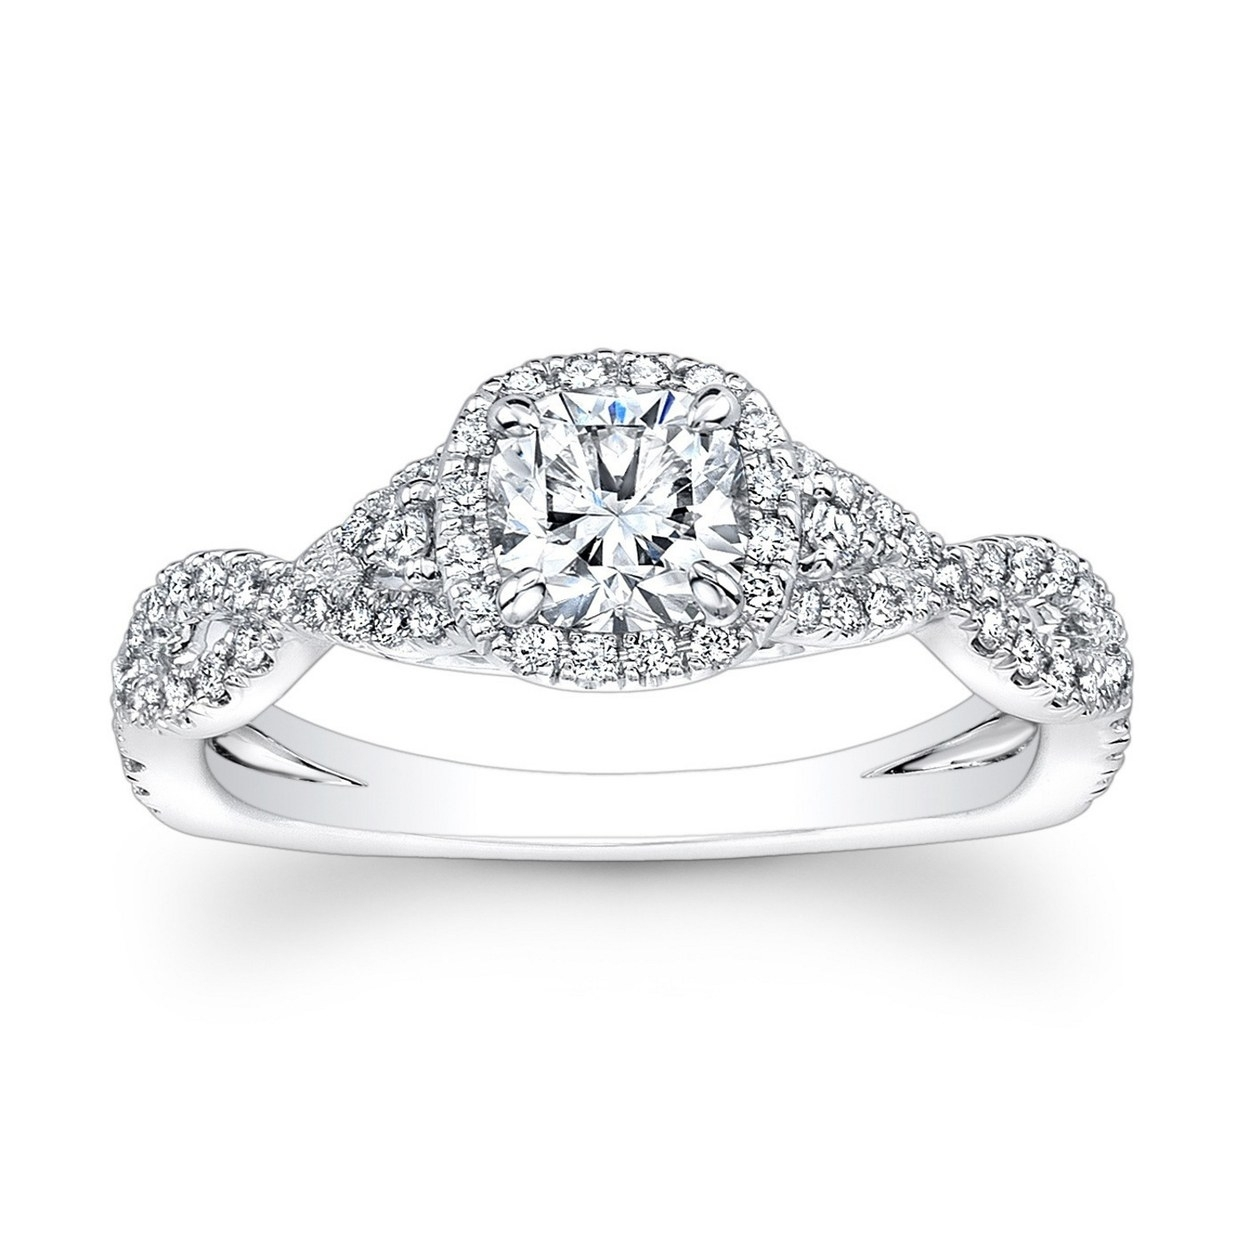 62 Diamond Engagement Rings Under $5,000 | Glamour In Latest Oval Diamond Double Frame Twist Vintage Style Bridal Rings In 14K White Gold (View 3 of 15)